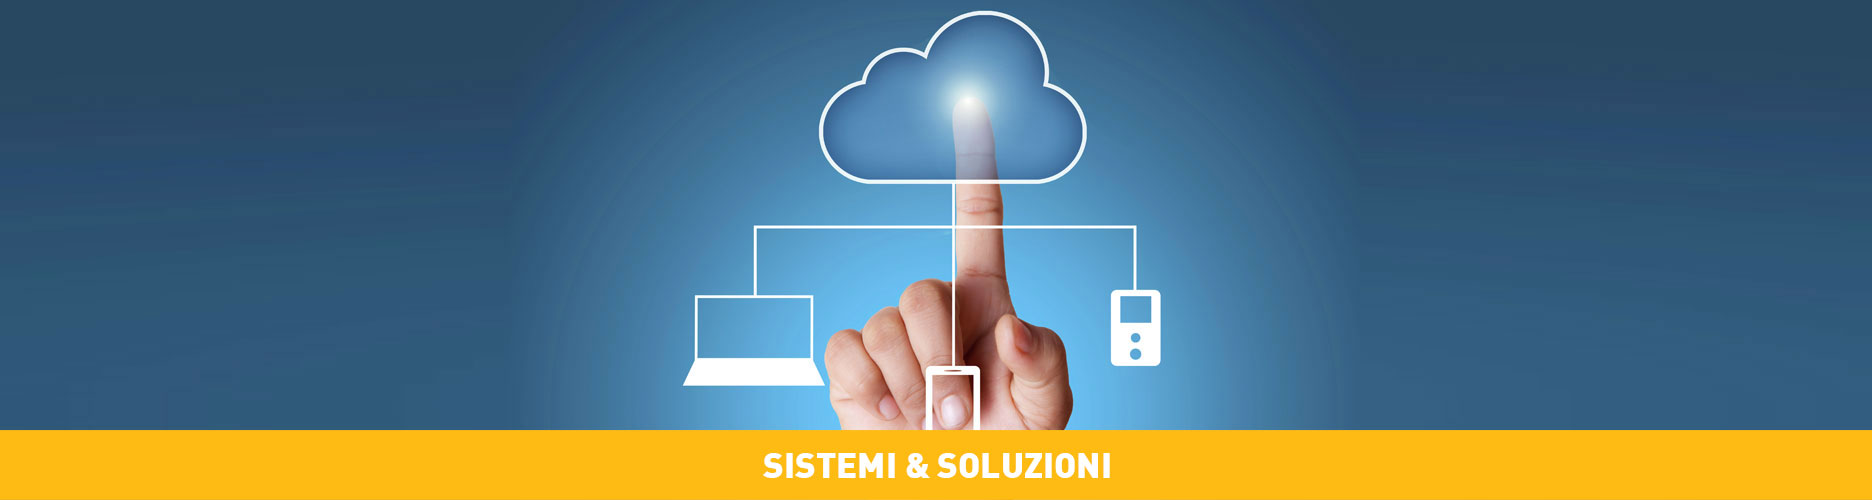 Reti aziendali, Housing, Cloud privato, Server farm